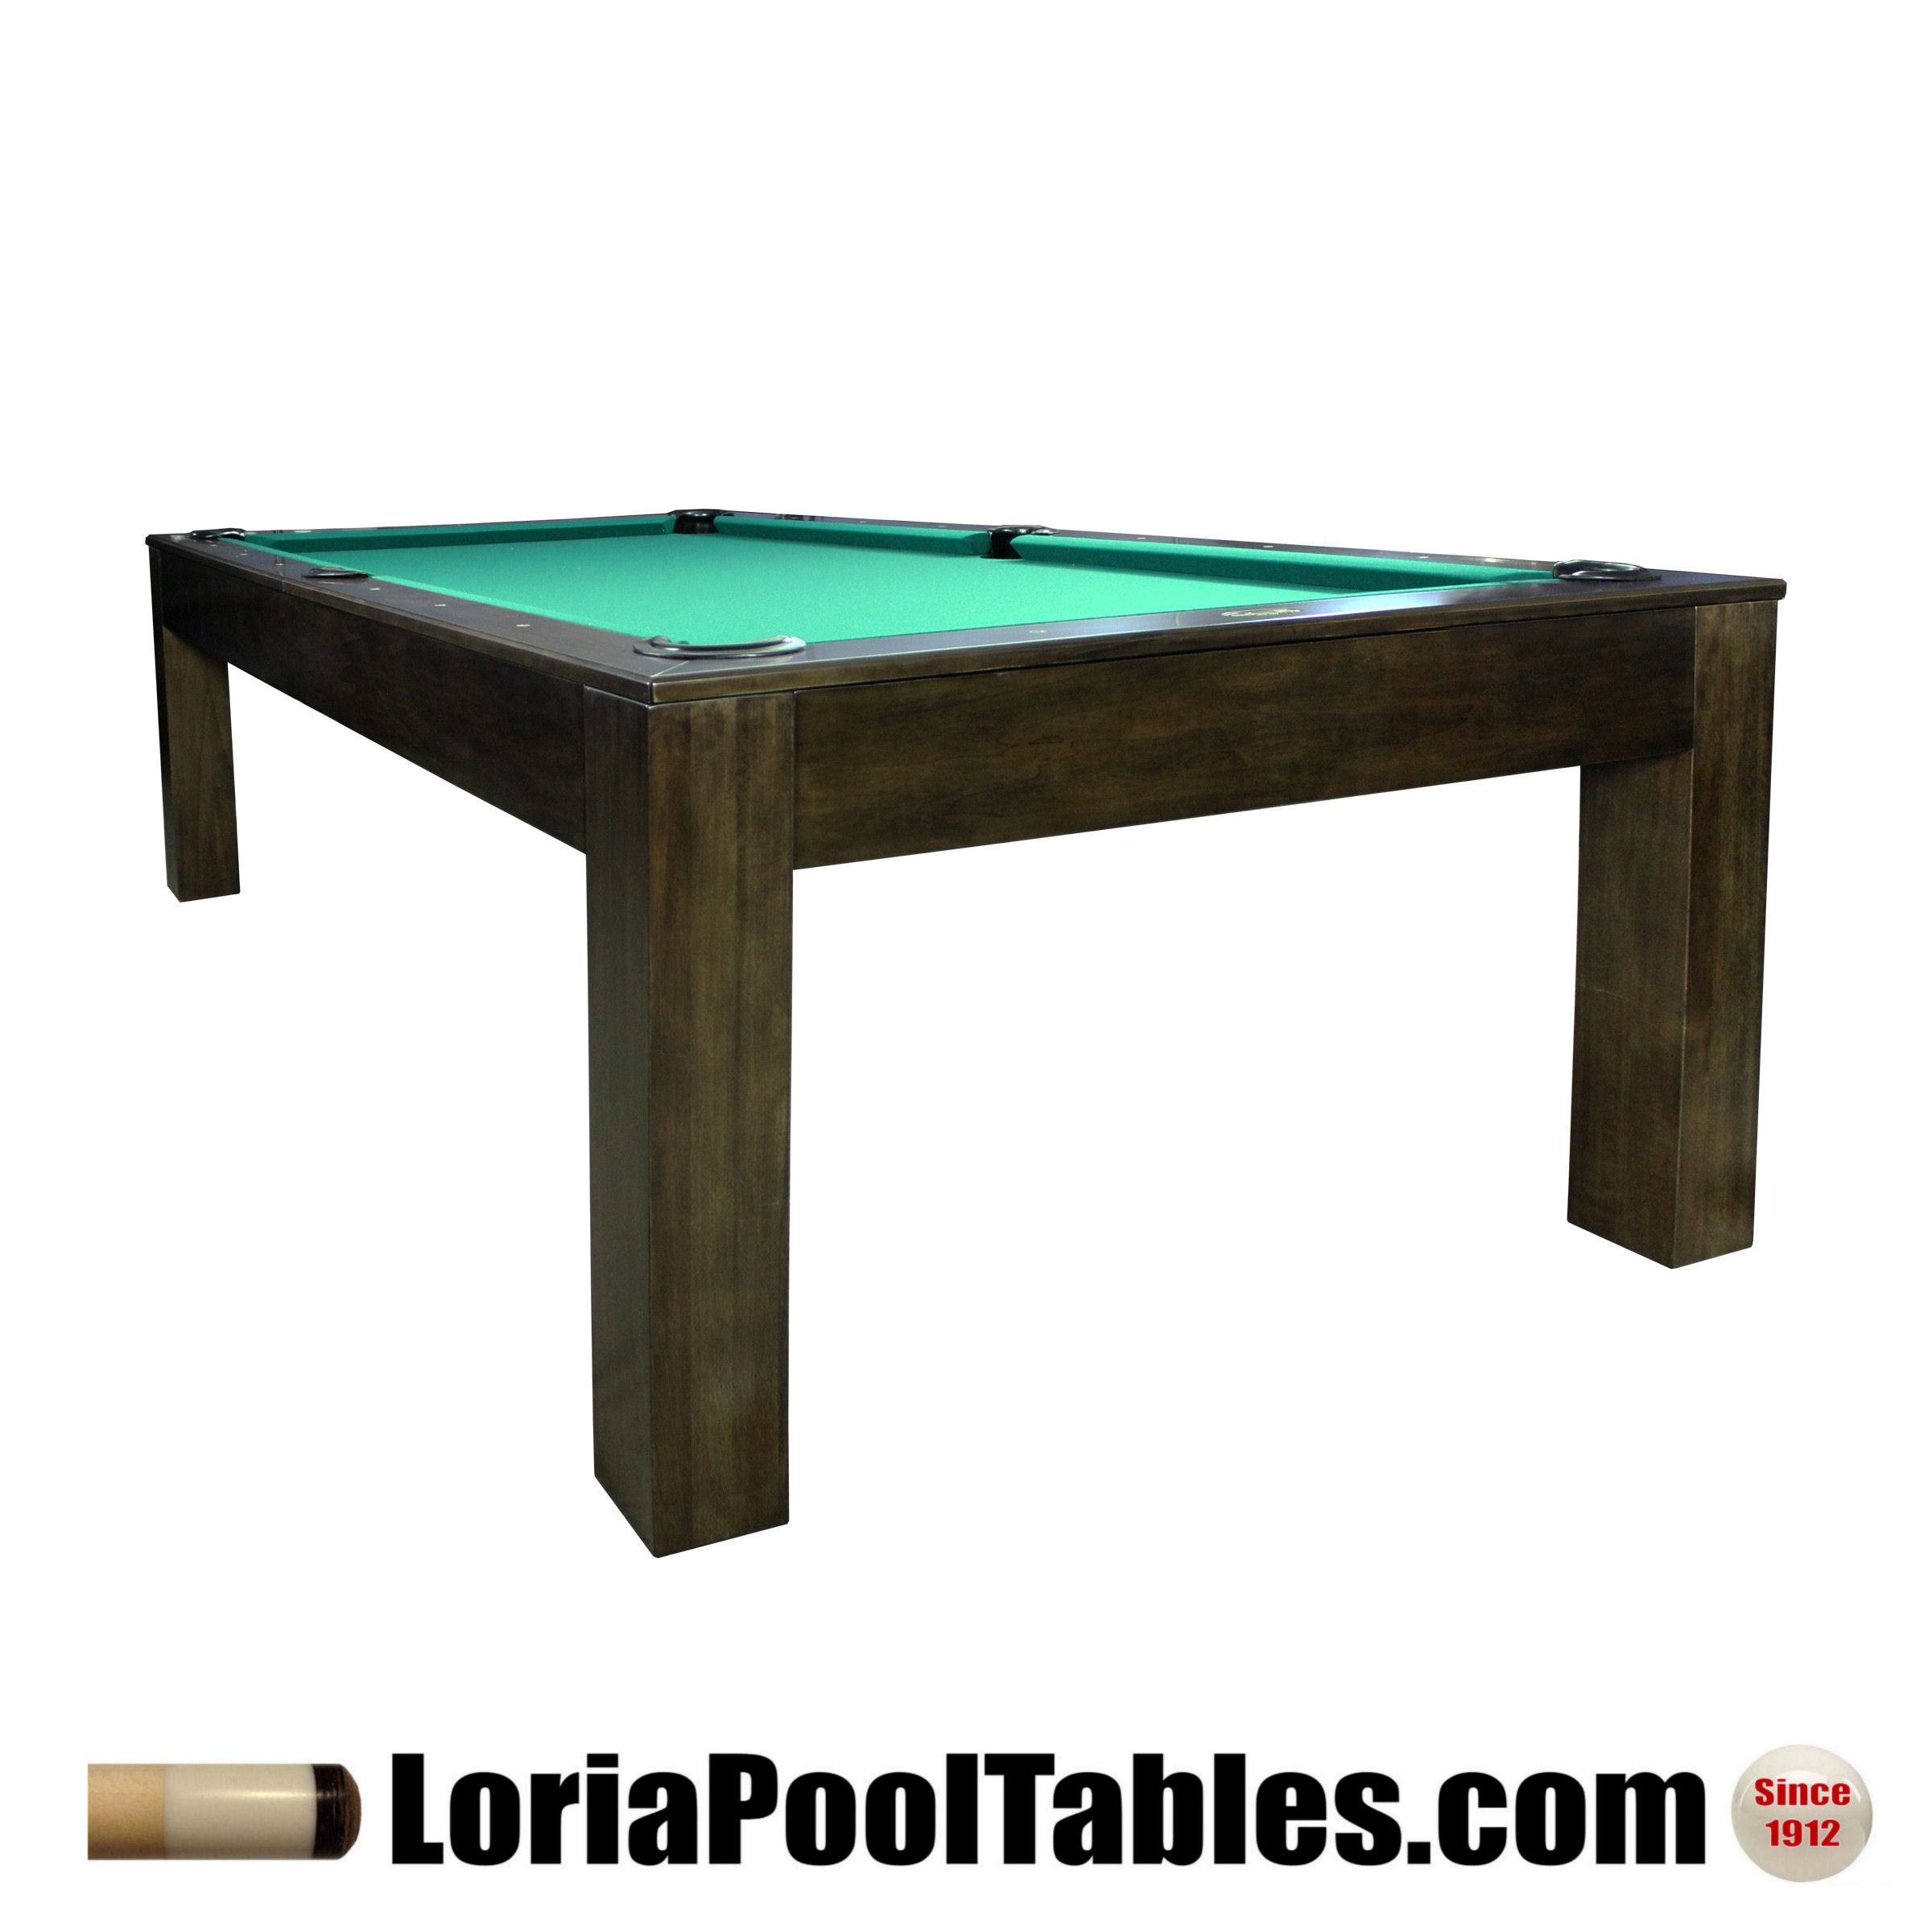 The Penelope Charcoal Finish Pool Table With Dining Top